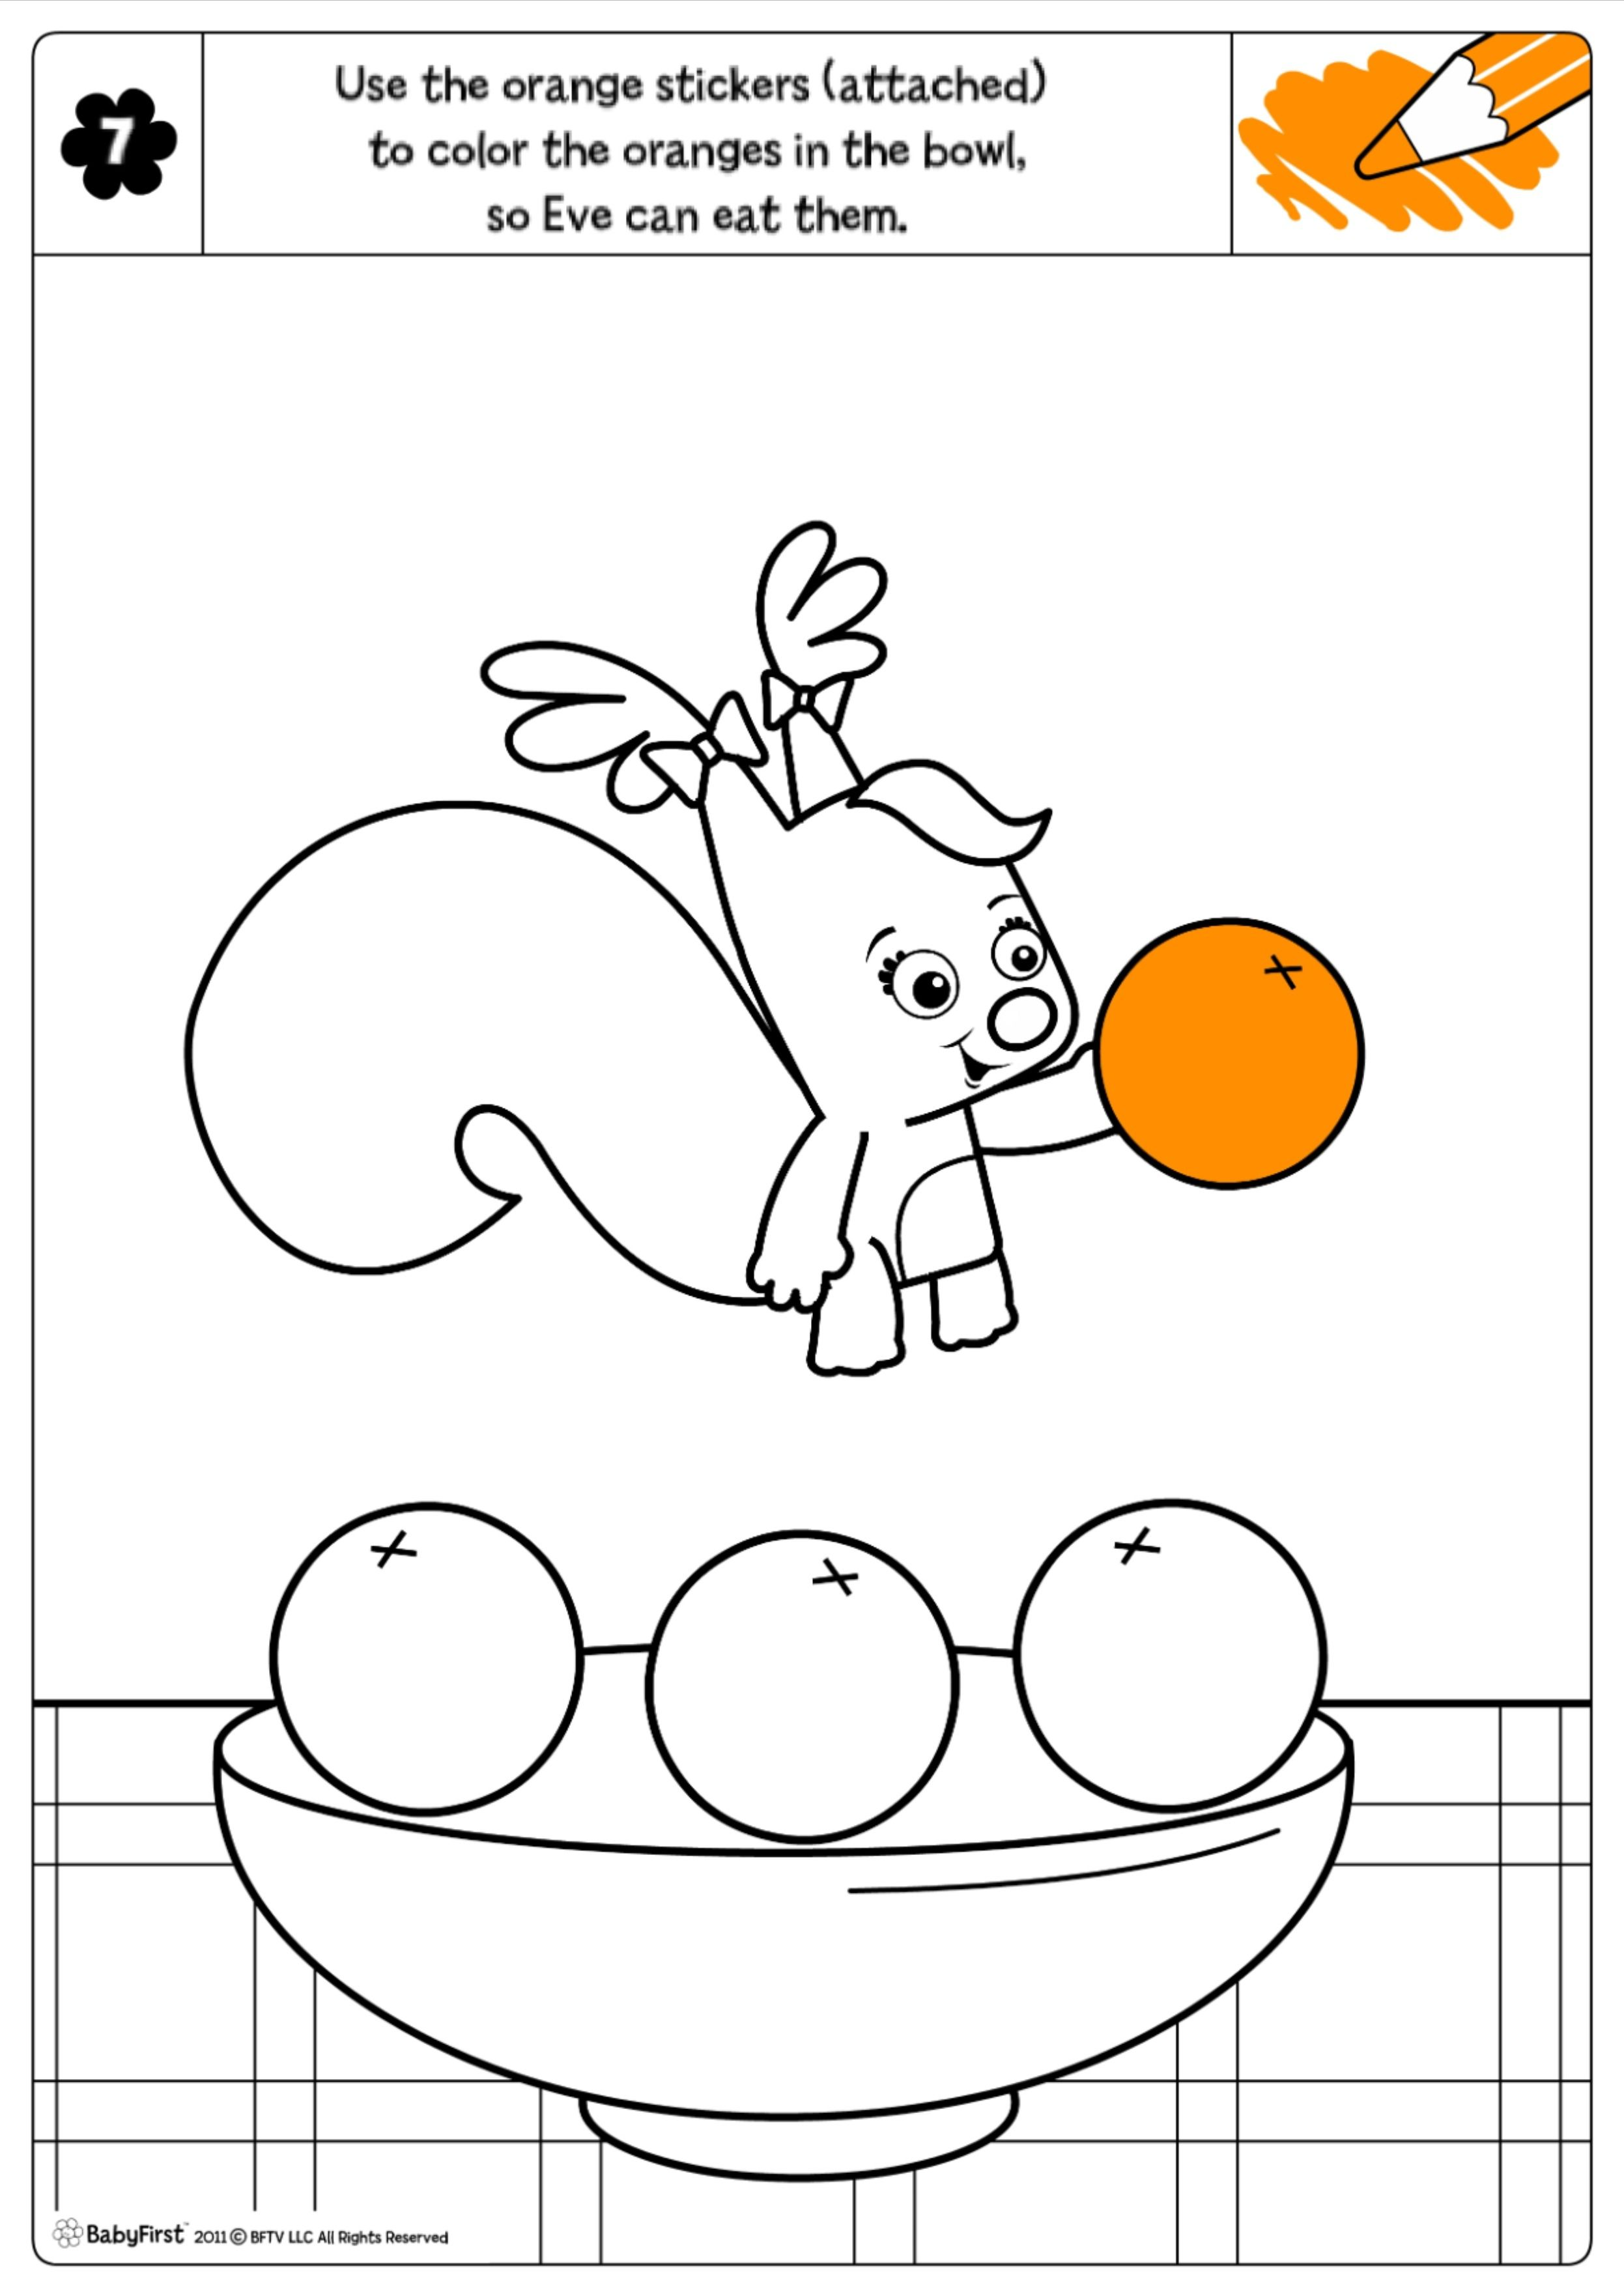 Color The Fruits Free Printables Free Printable Coloring Pages Printable Coloring Pages Coloring Pages